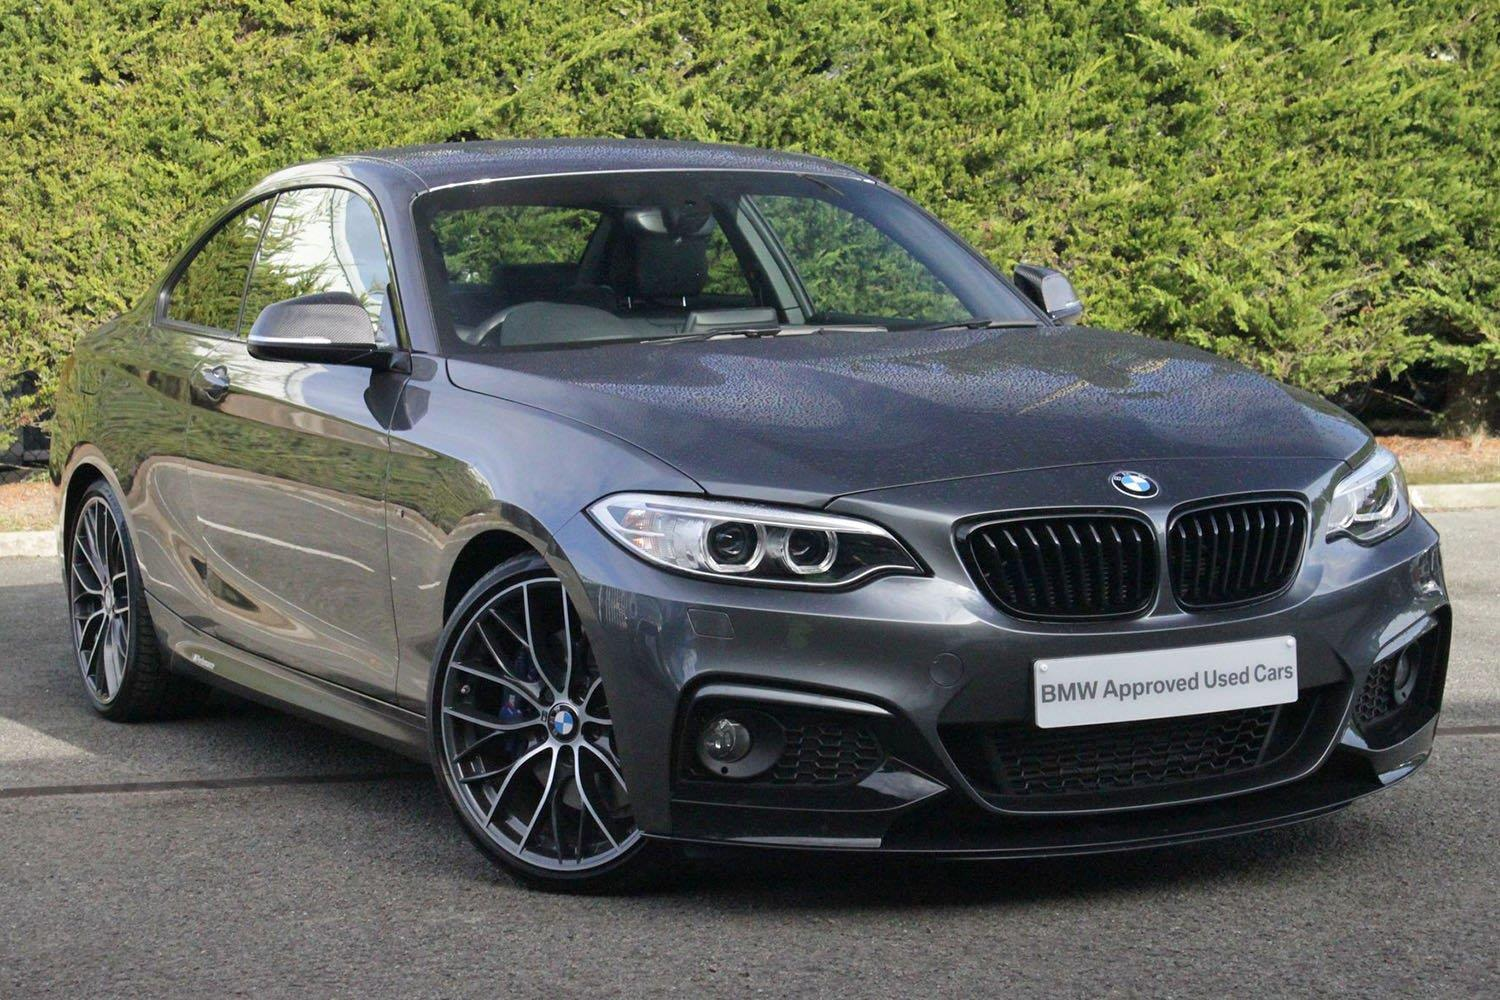 BMW 2 Series Coupé CX16RVF - Image 2